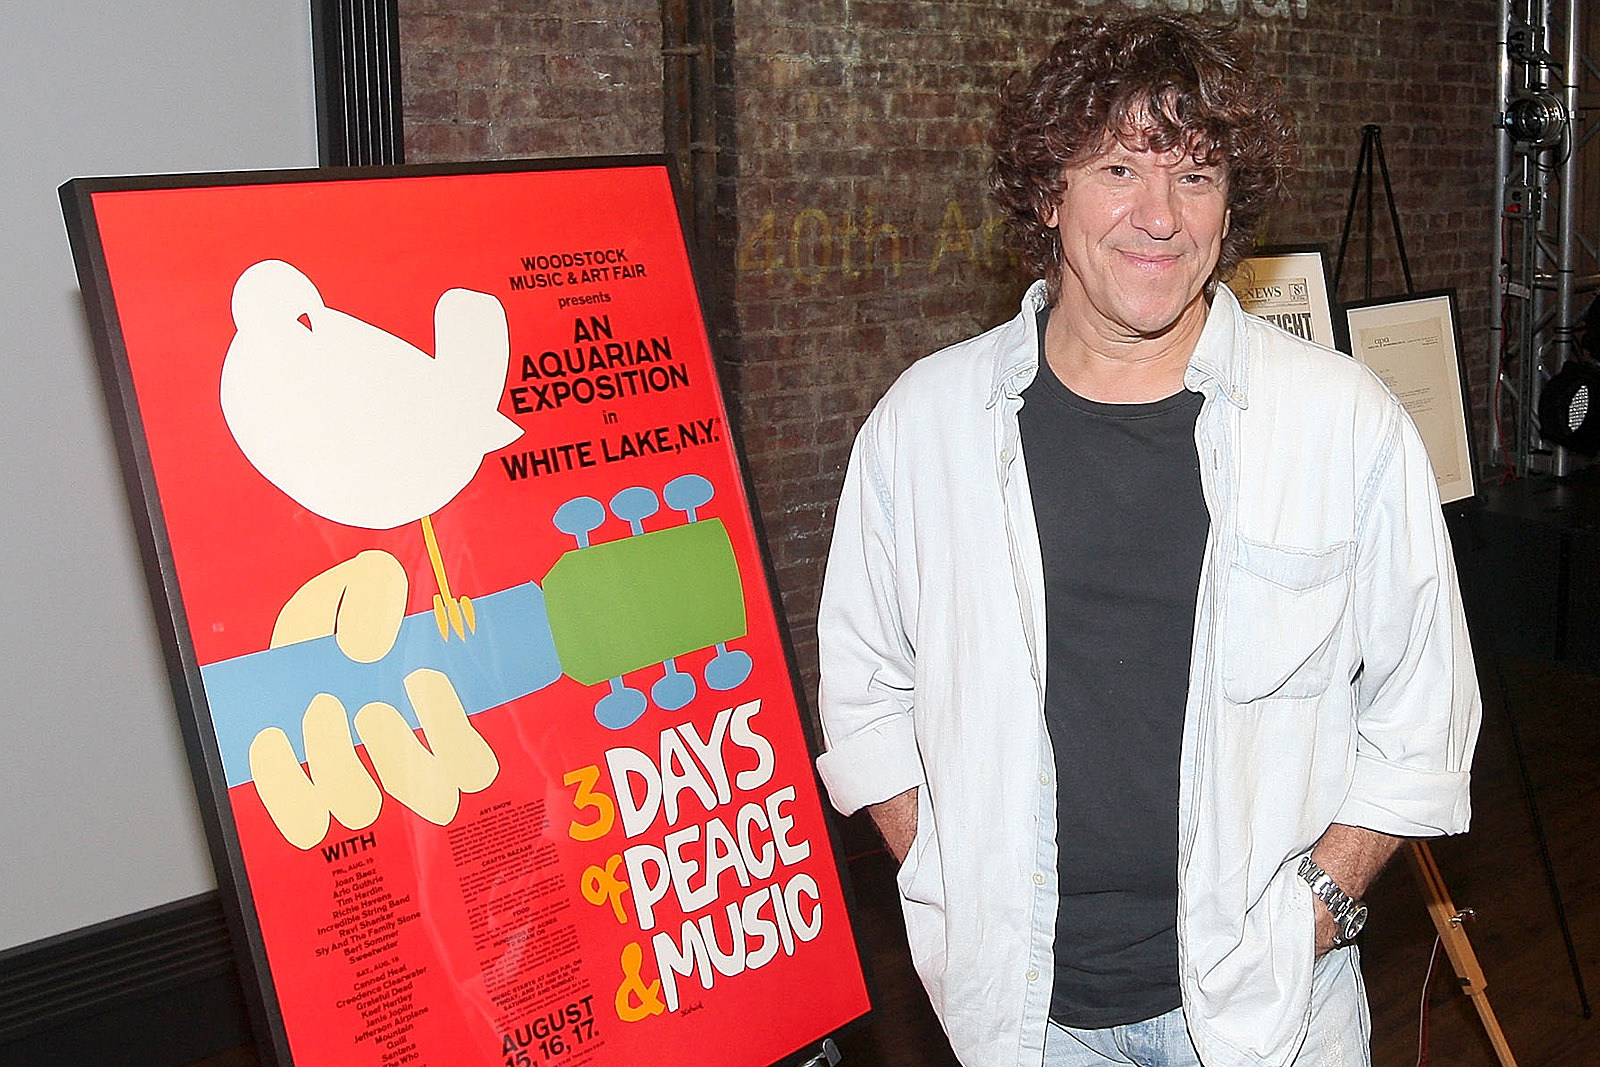 Woodstock 50 Cancelation 'Just More Rumors' Says Founder